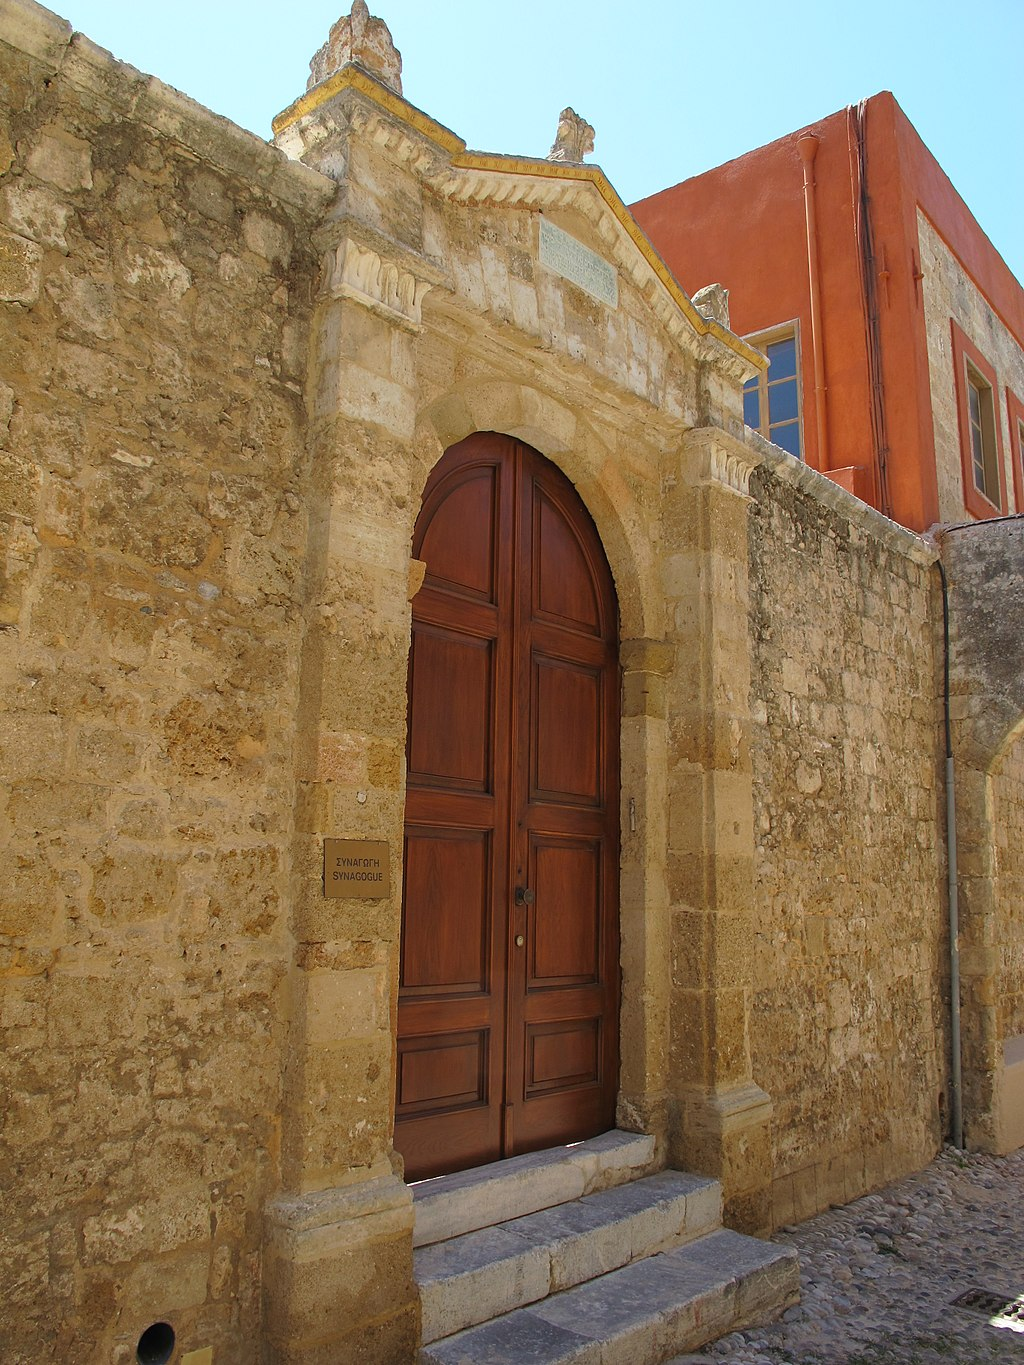 Nestled in the eastern part of the City of Rhodes, La Juderia